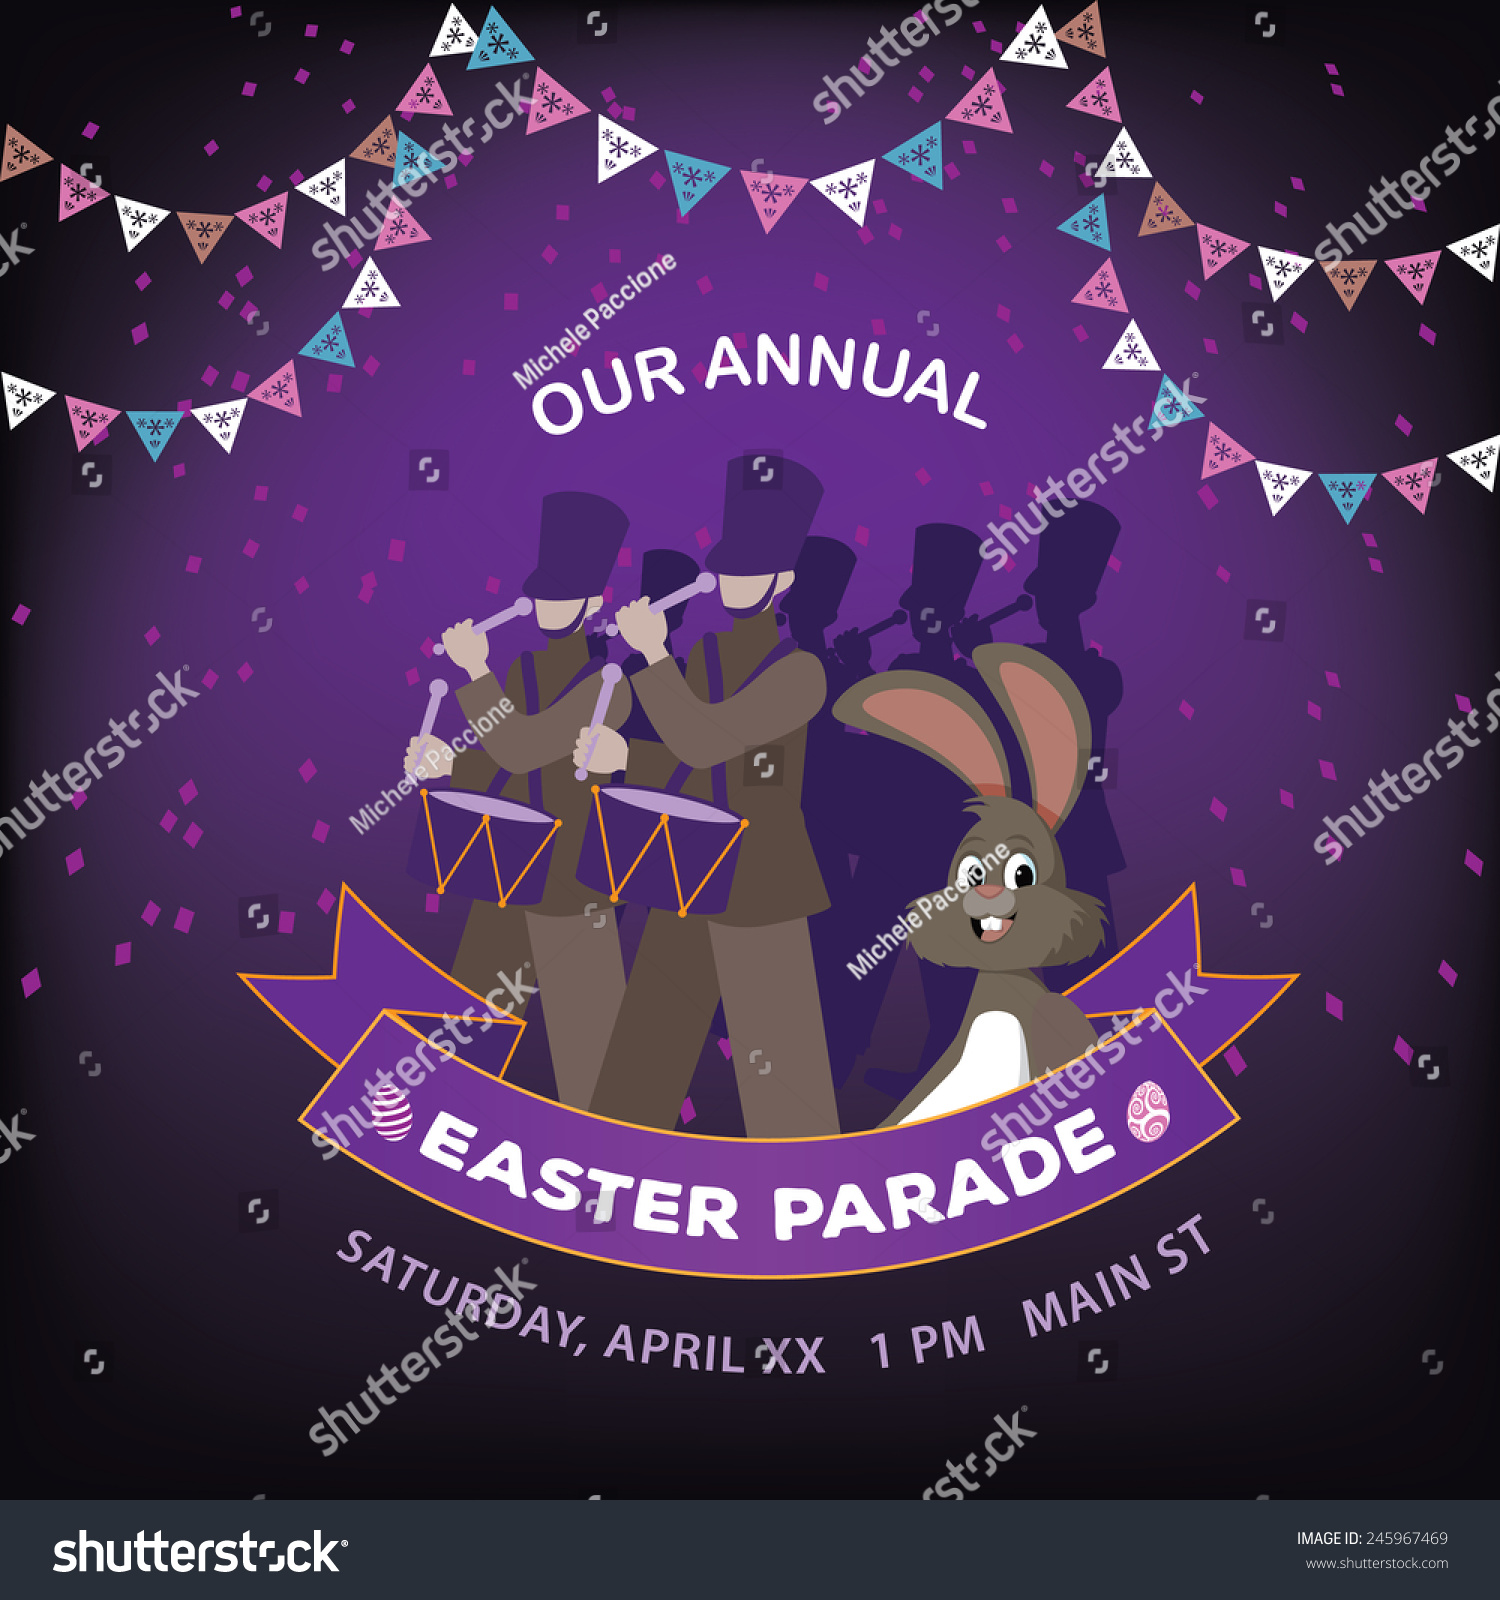 Easter Parade Background Eps 10 Vector Royalty Free Stock Illustration ...